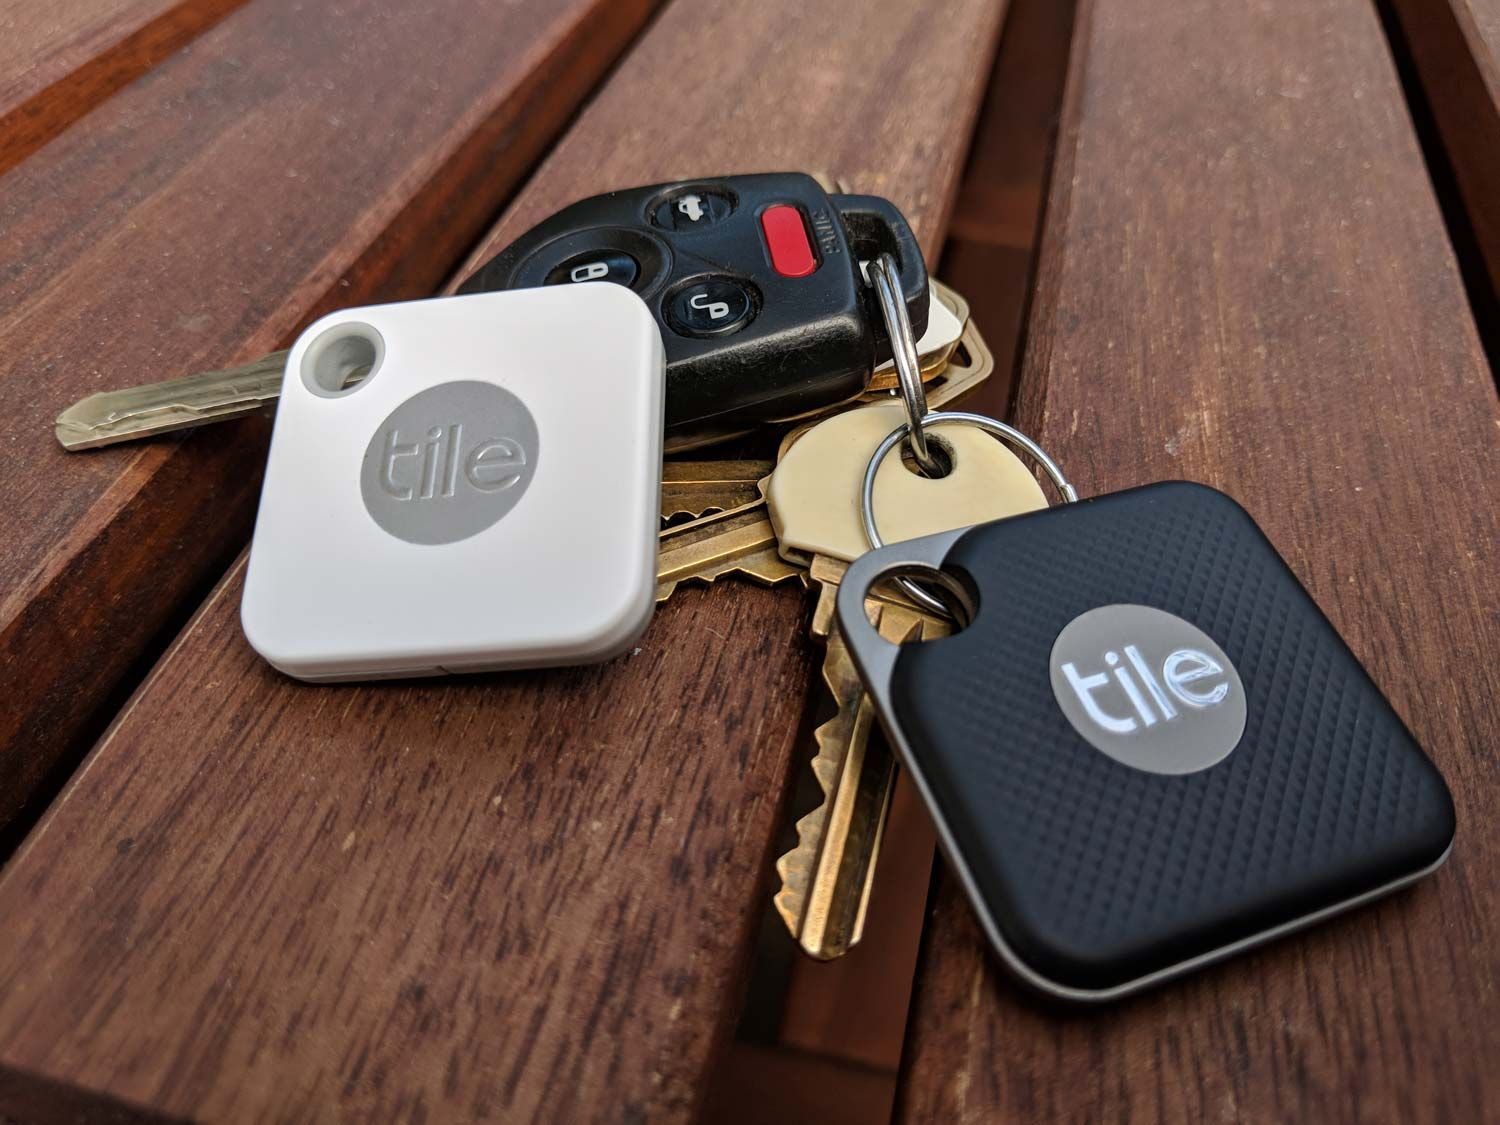 Tile Pro And Tile Mate Review The Best Key Finders Just Got Better Health And Technology Key Finder Tile Bluetooth Tracker Tile Tracker